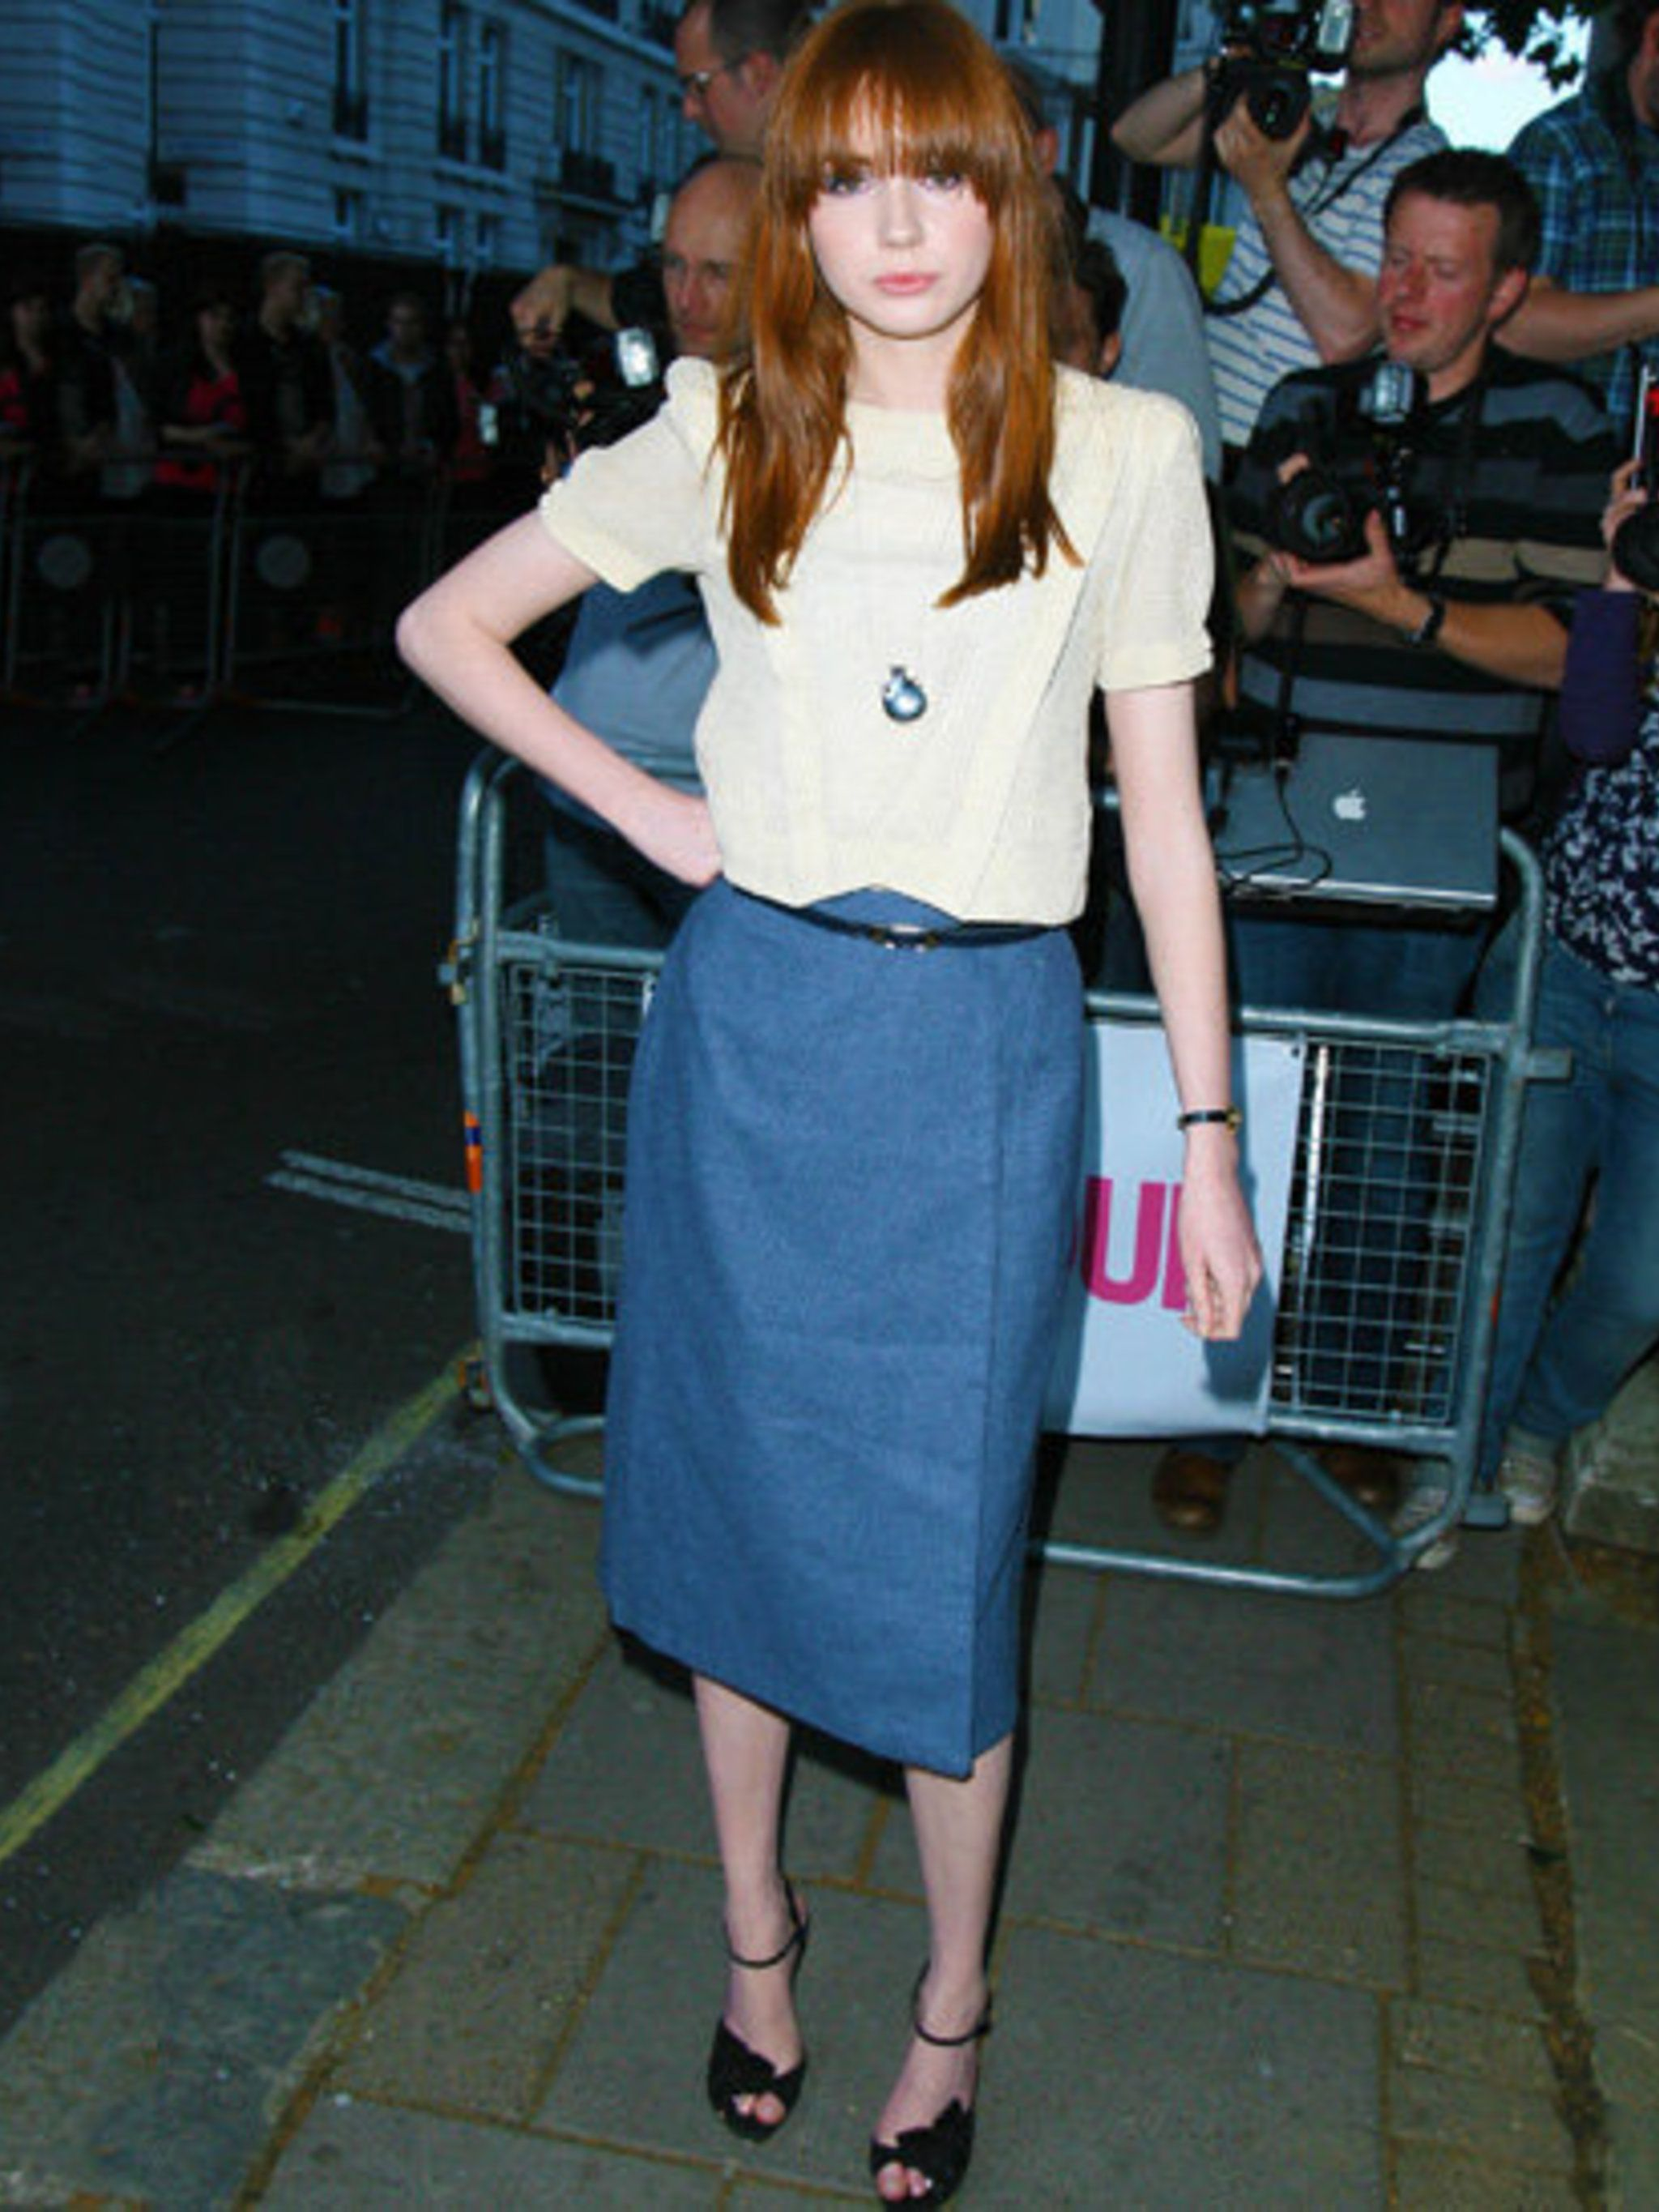 <p>Karen Gillan attends another red carpet event in London.</p>